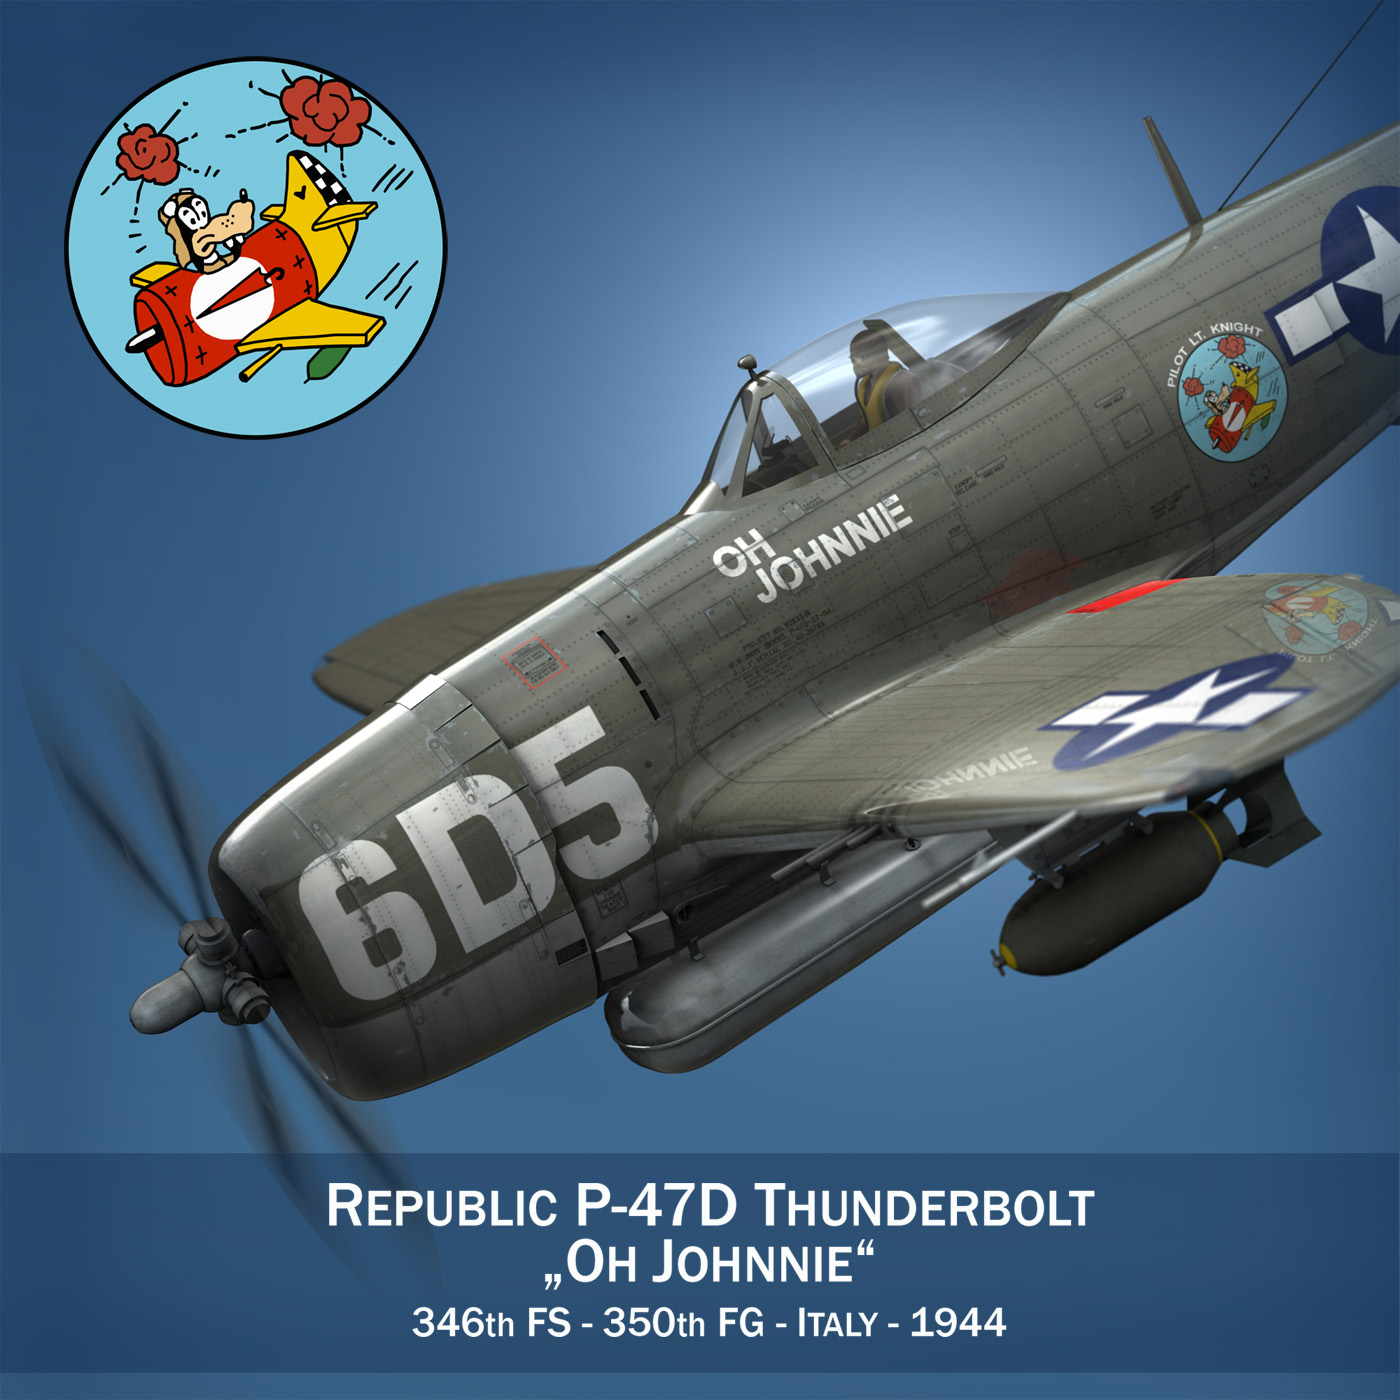 republic p-47 thunderbolt – oh johnnie 3d model fbx c4d lwo obj 274247